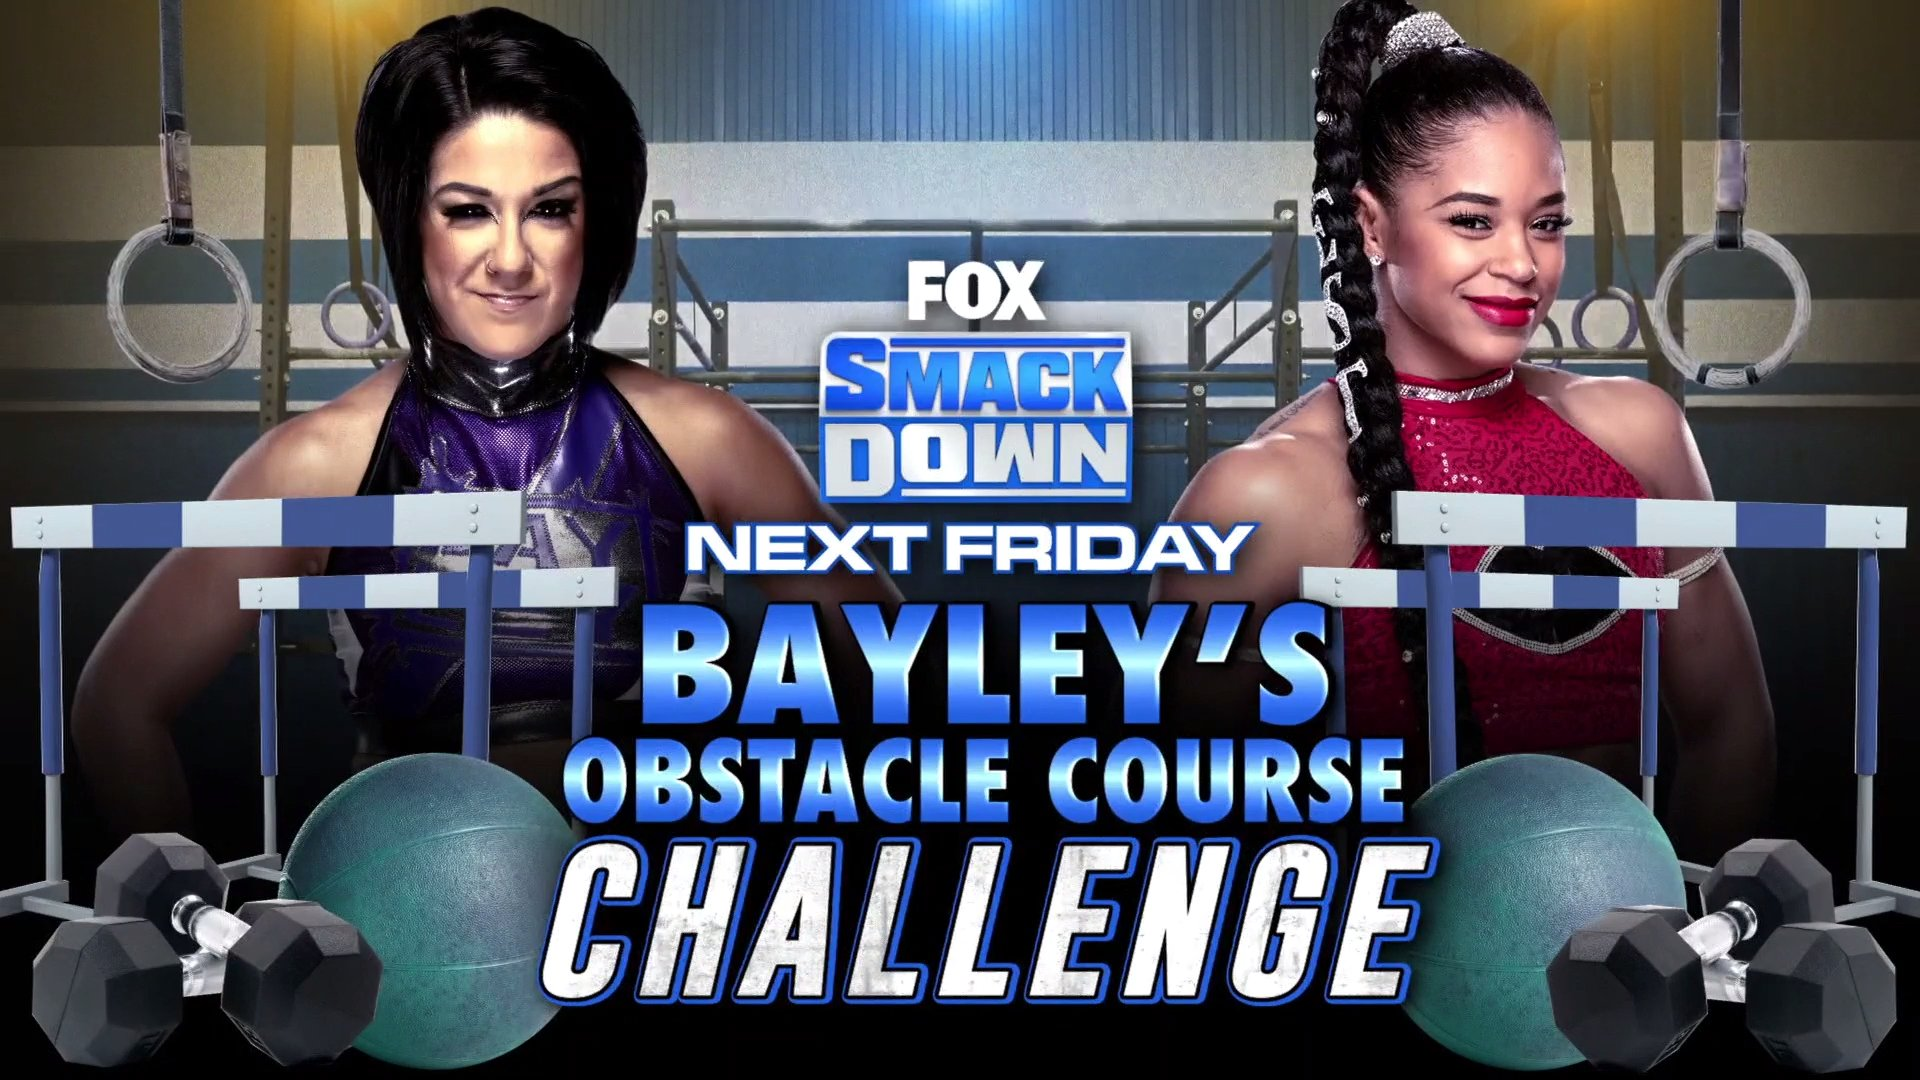 WWE Smackdown: Title Match & Obstacle Challenge Course Announced 2